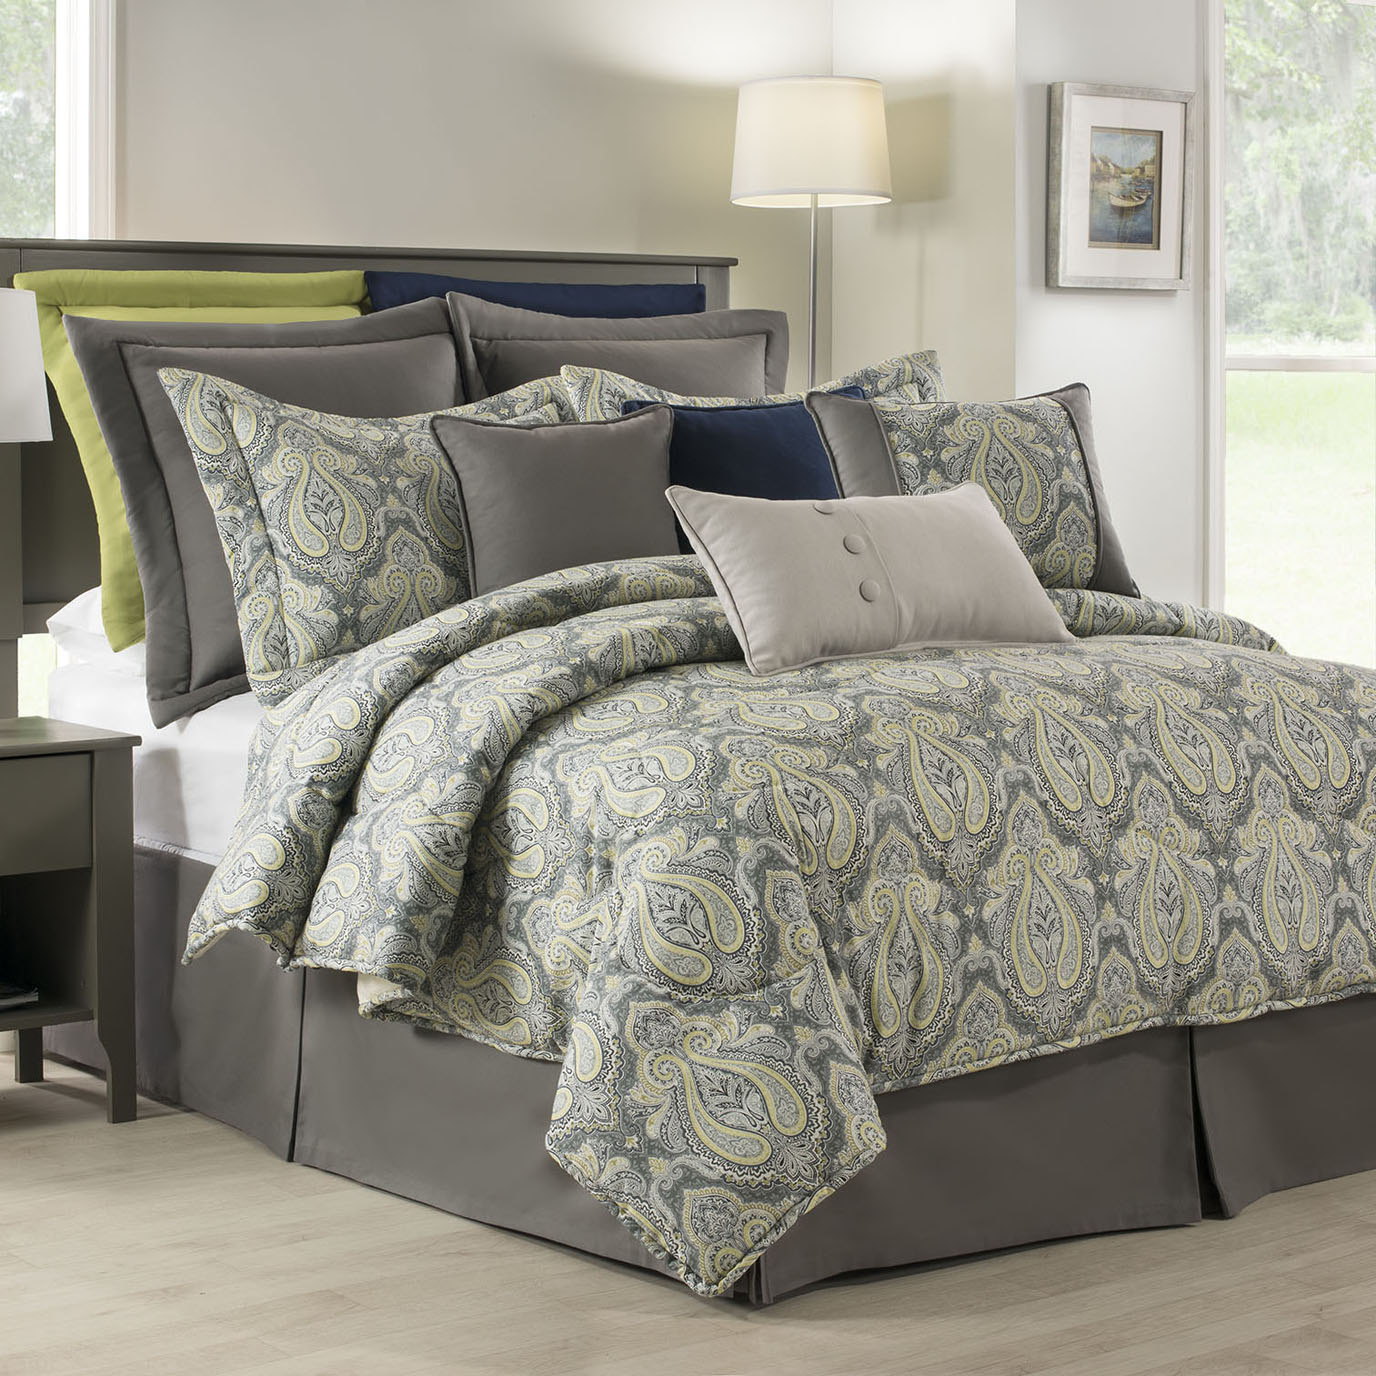 "Park Avenue Twin Comforter Set(15"" Bed Skirt)"